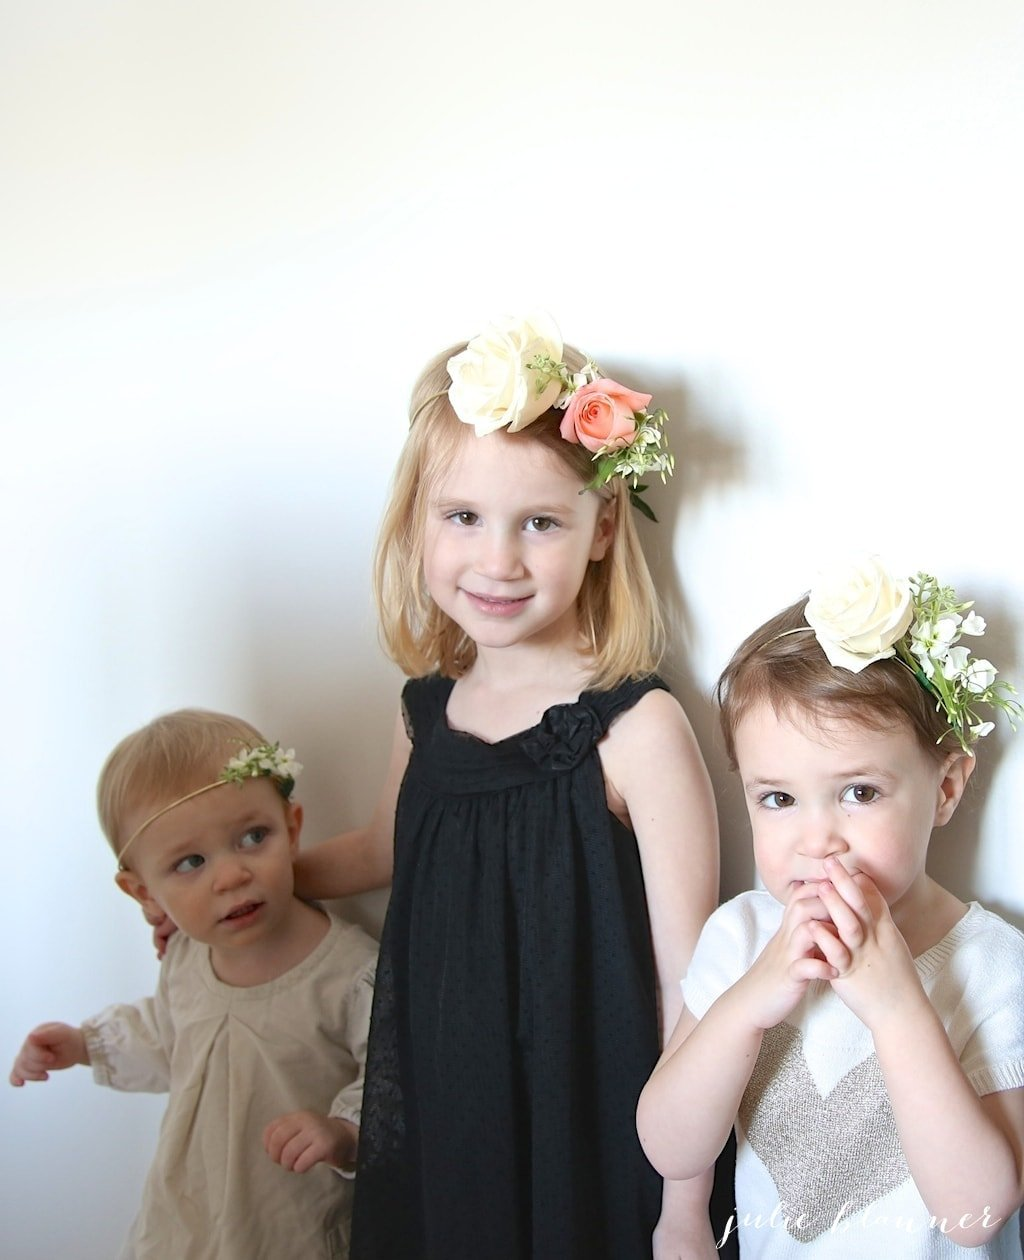 Beautiful idea for photos - flower crowns